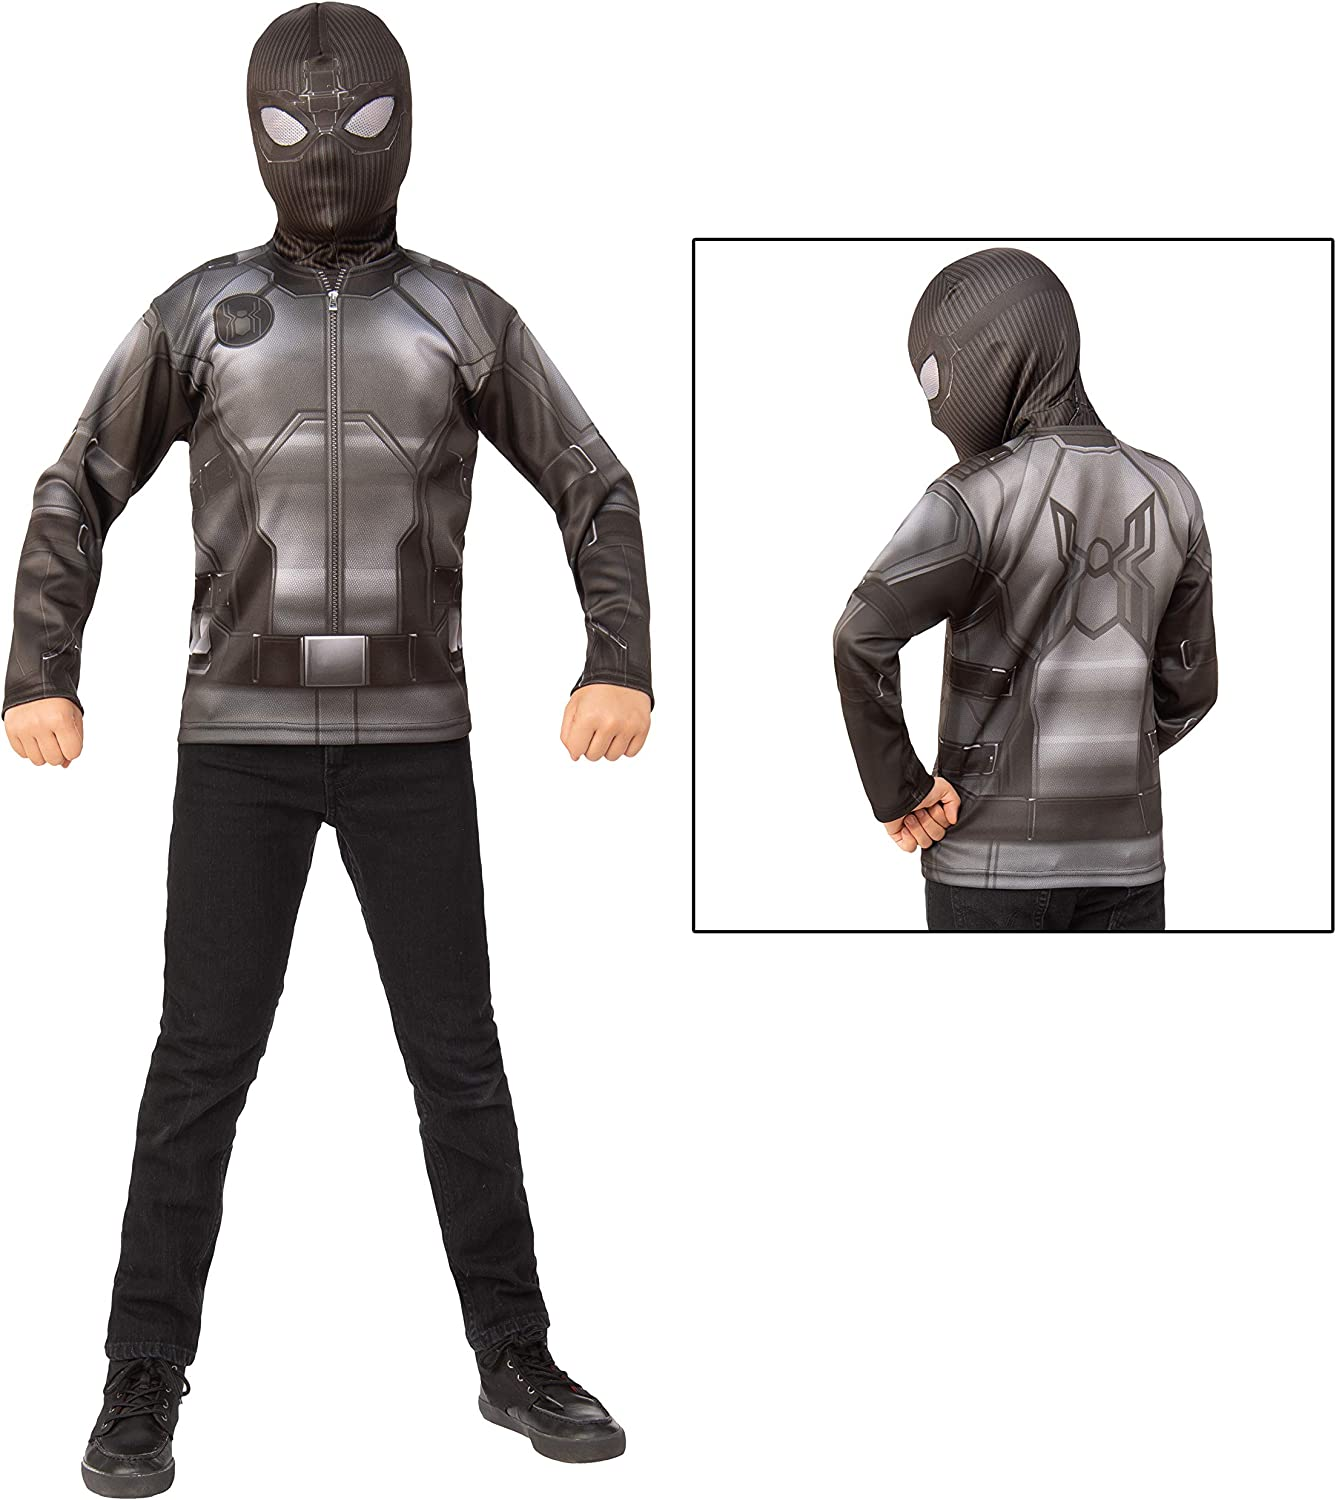 Spider-Man Far from Home: Spider-Man Adult Costume Top (Stealth Black/Gray Suit)